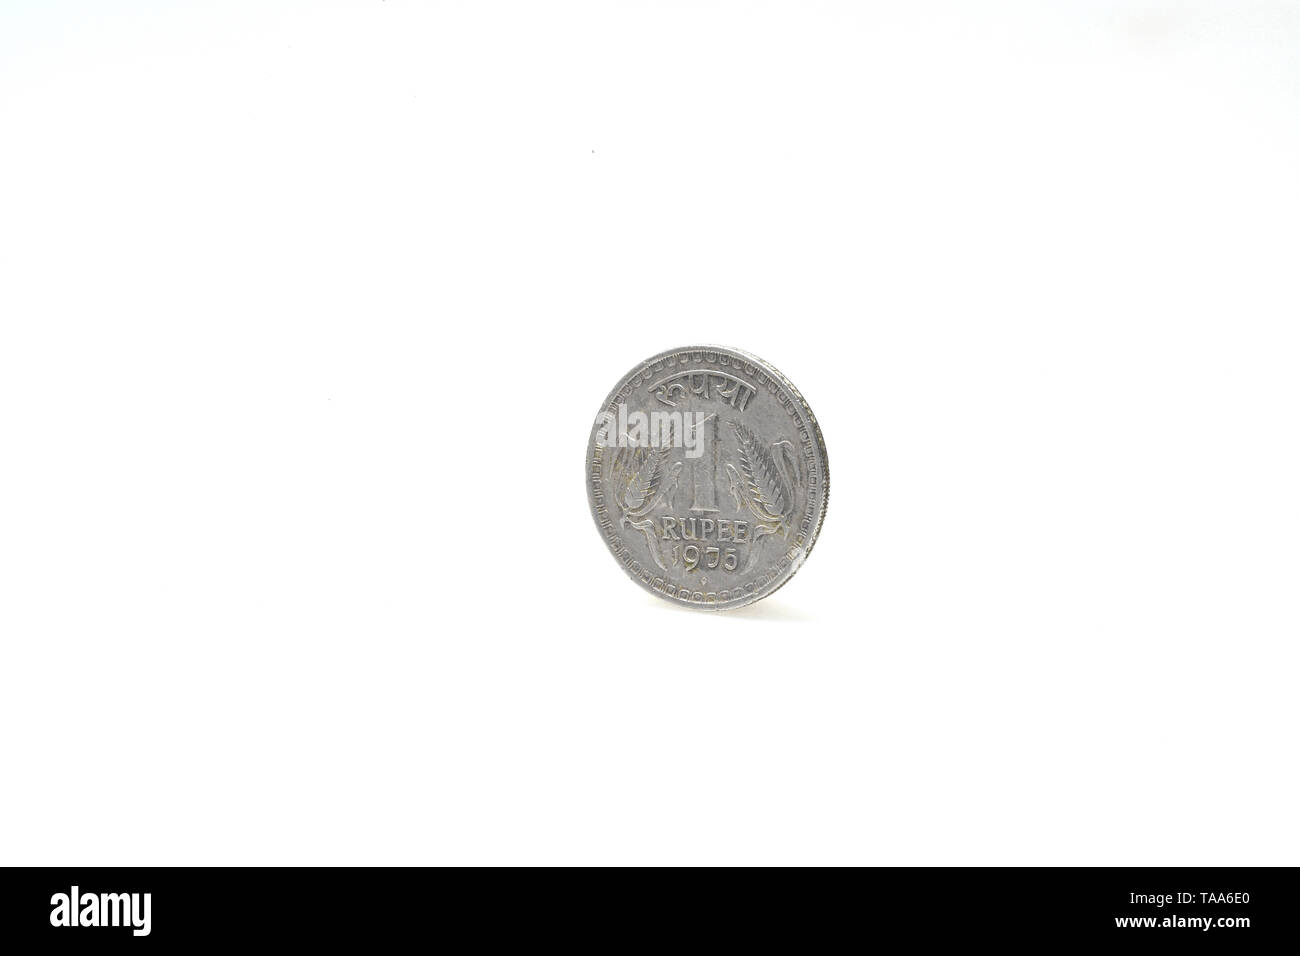 one rupee coin on white background, India, Asia, 1975 - Stock Image